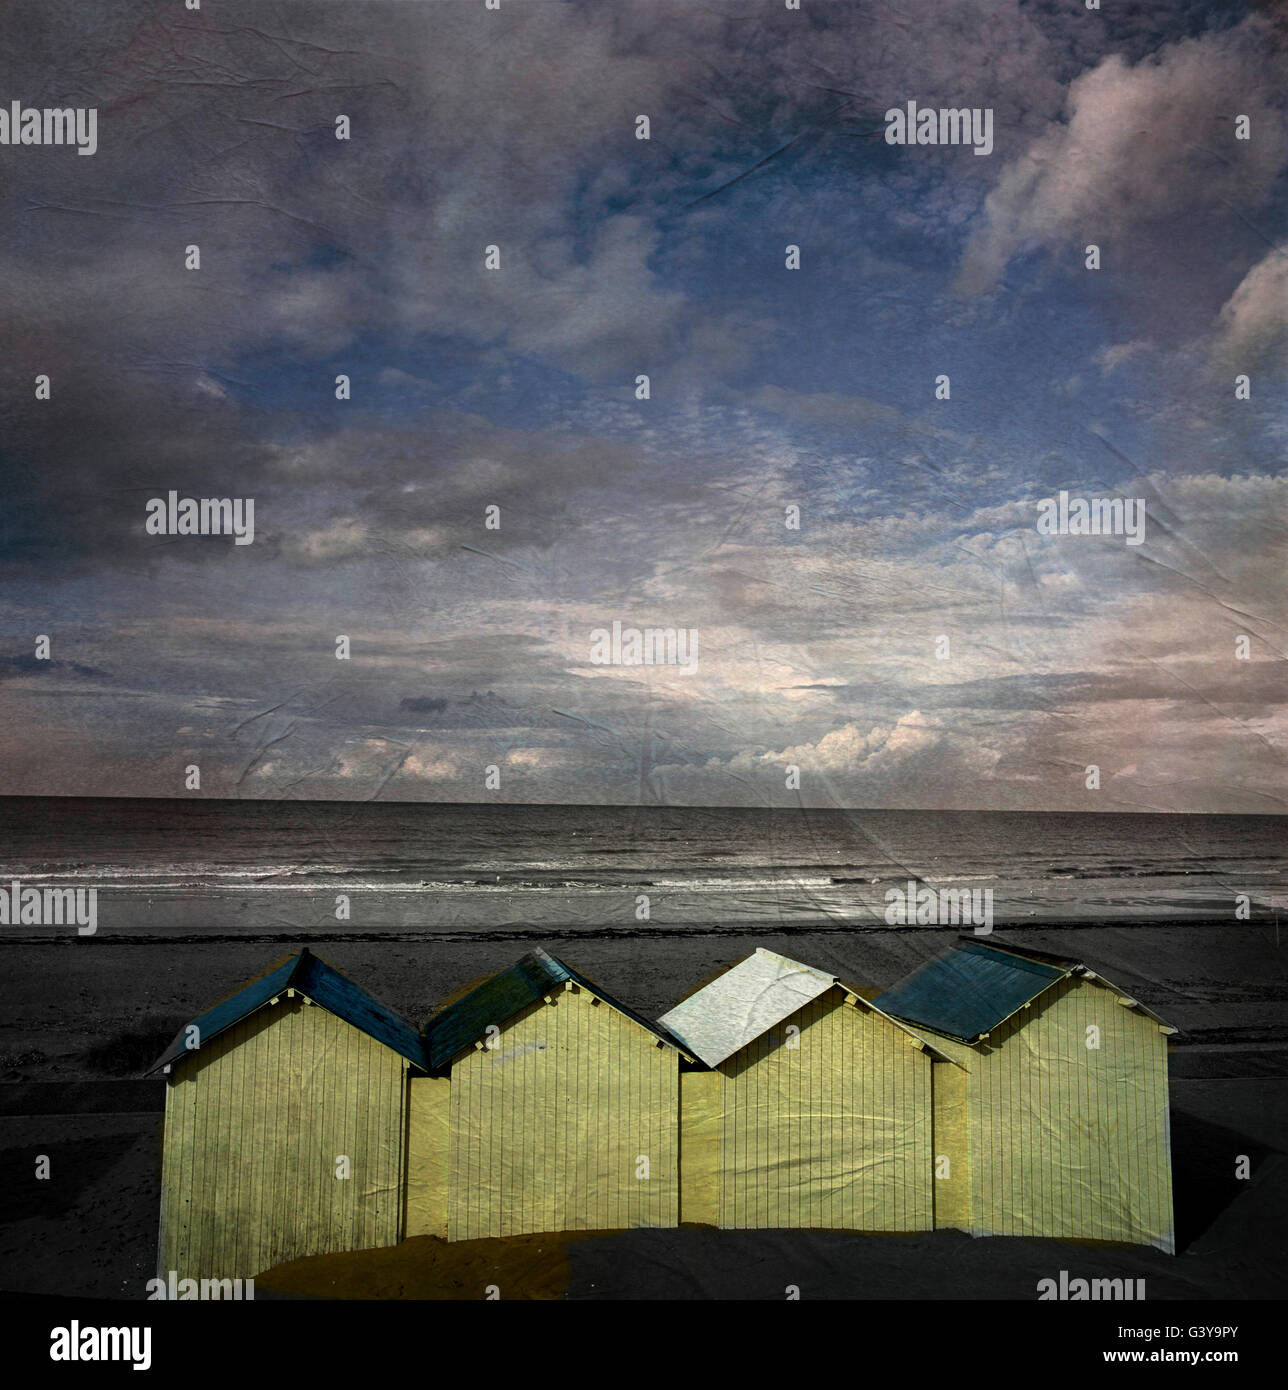 Beach huts under a stormy sky, vintage-look, Normandy, France, Europe Stock Photo